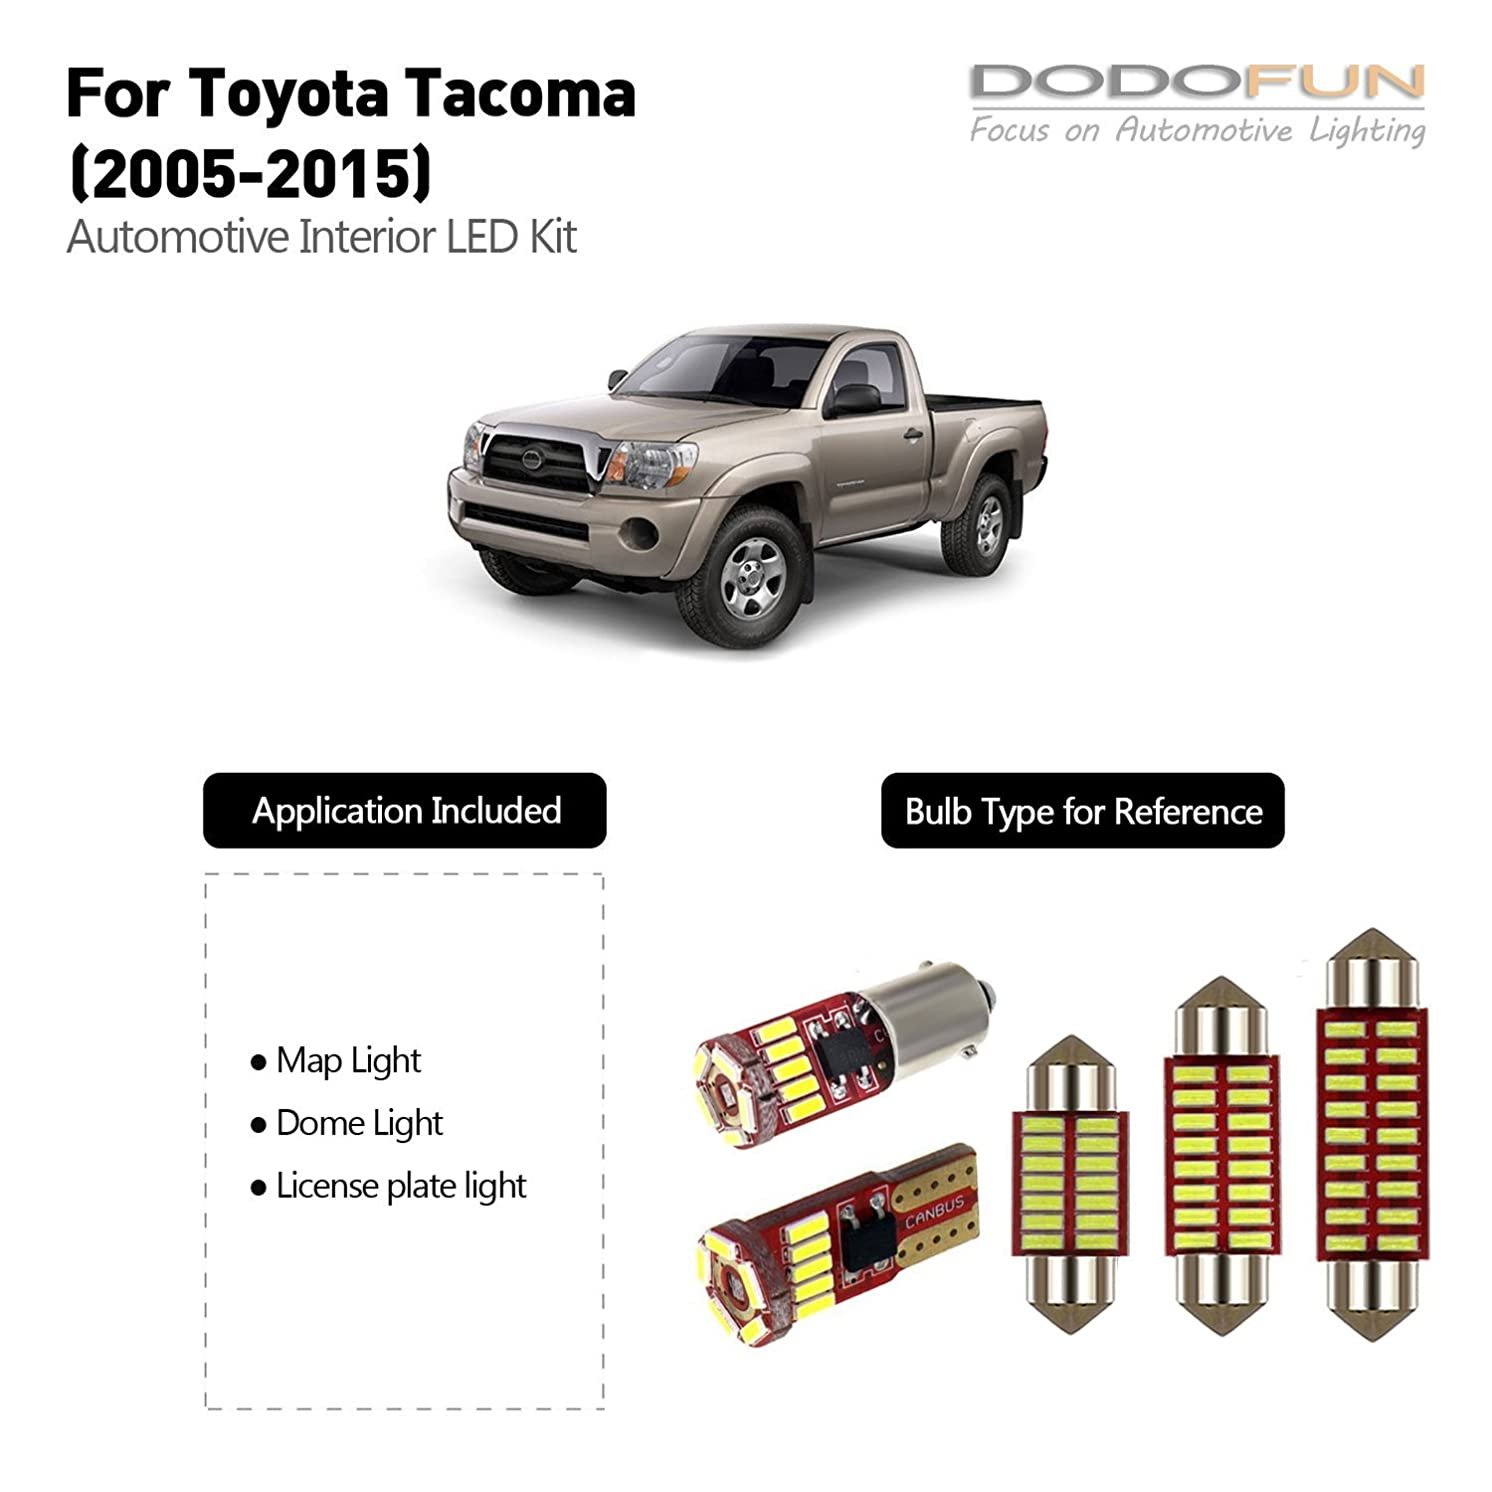 DODOFUN Deluxe Interior LED Light Kit for 2005-2015 Toyota Tacoma (5-pc Bulb 6000k)